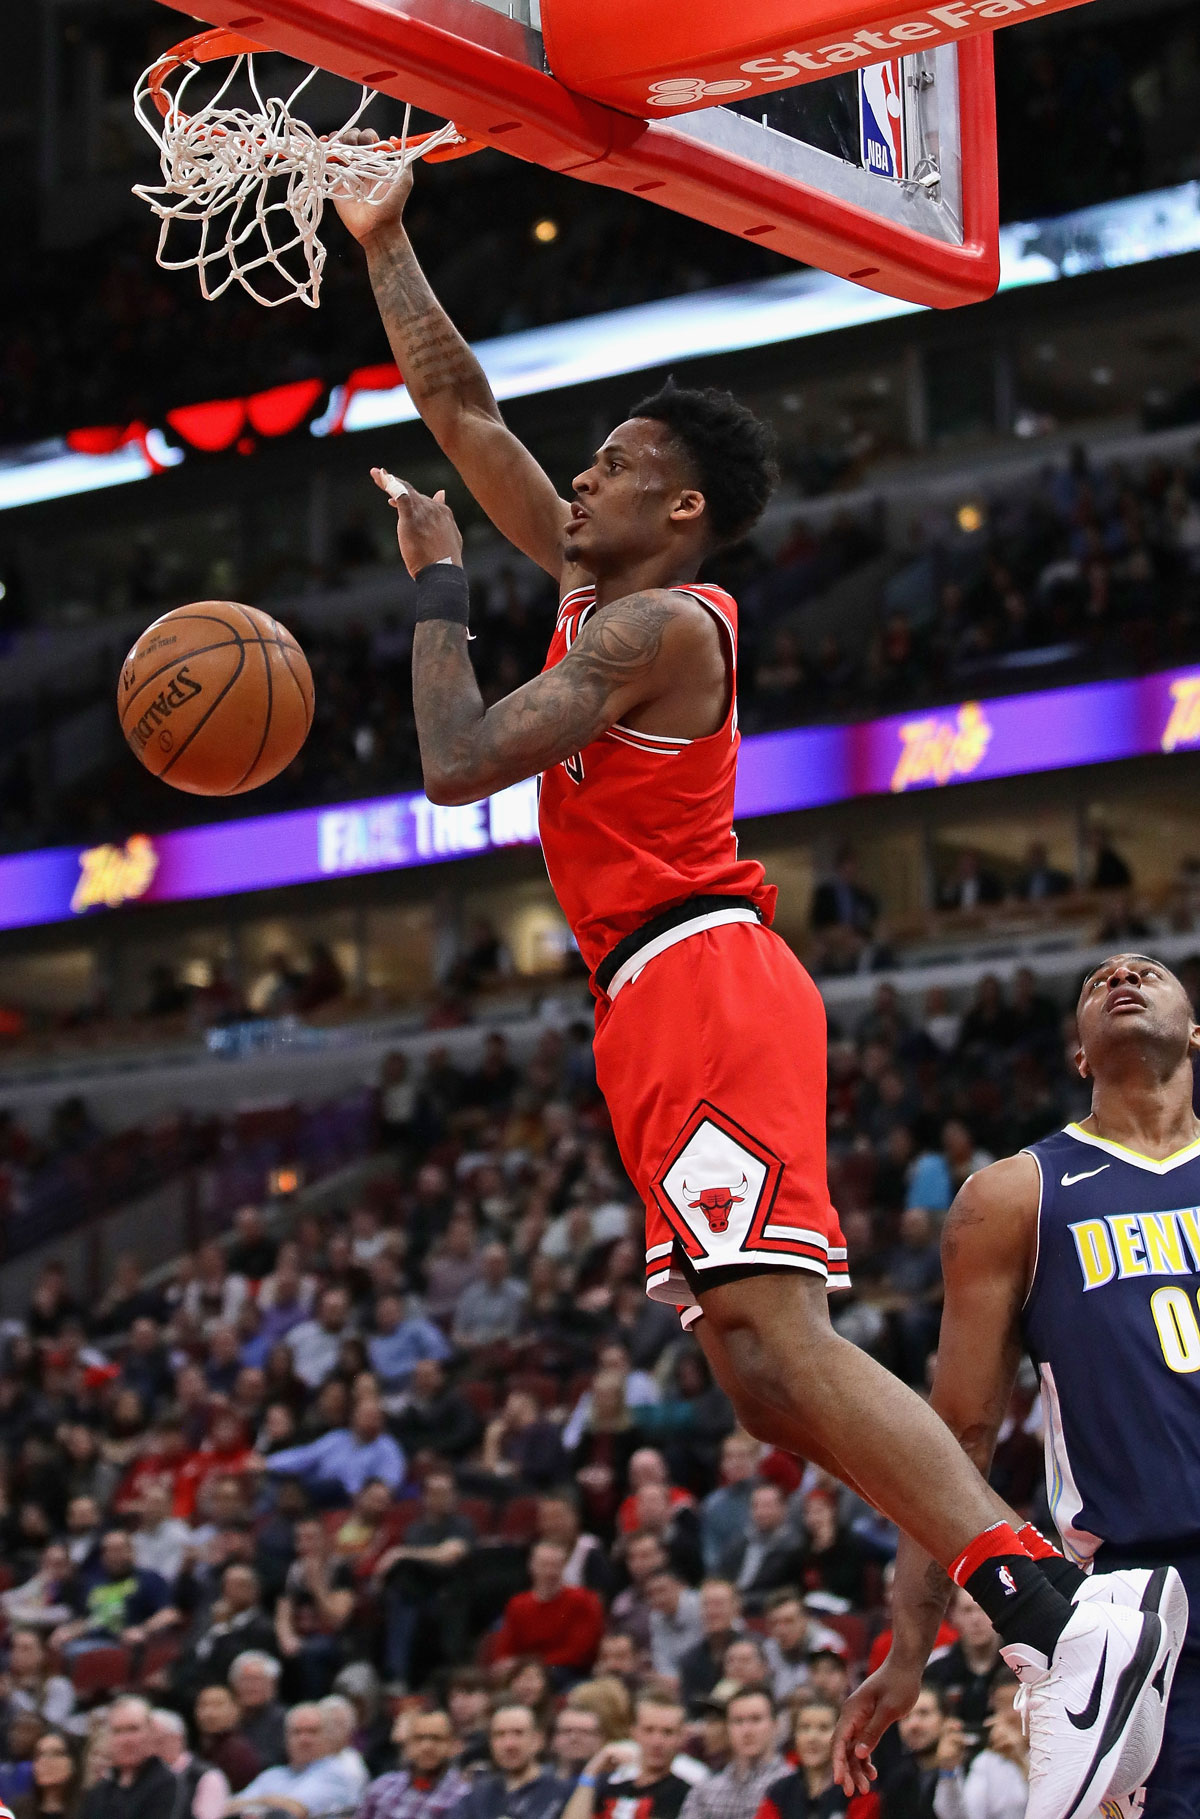 Antonio Blakeney #9 of the Chicago Bulls dunks over Darrell Arthur #00 of the Denver Nuggets at the United Center on March 21, 2018 in Chicago, Illinois.